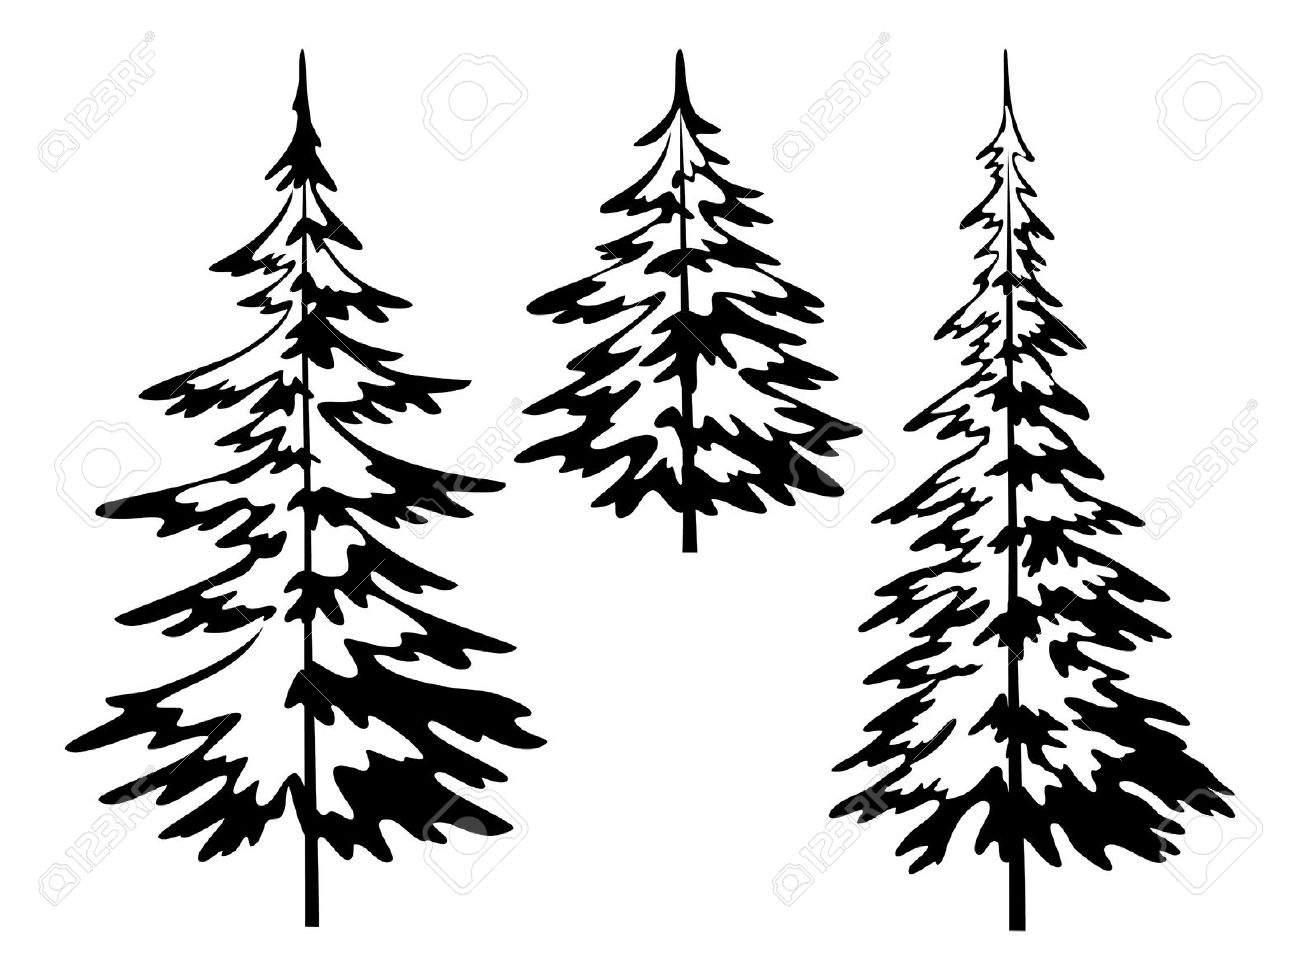 Evergreen Bush Clipart